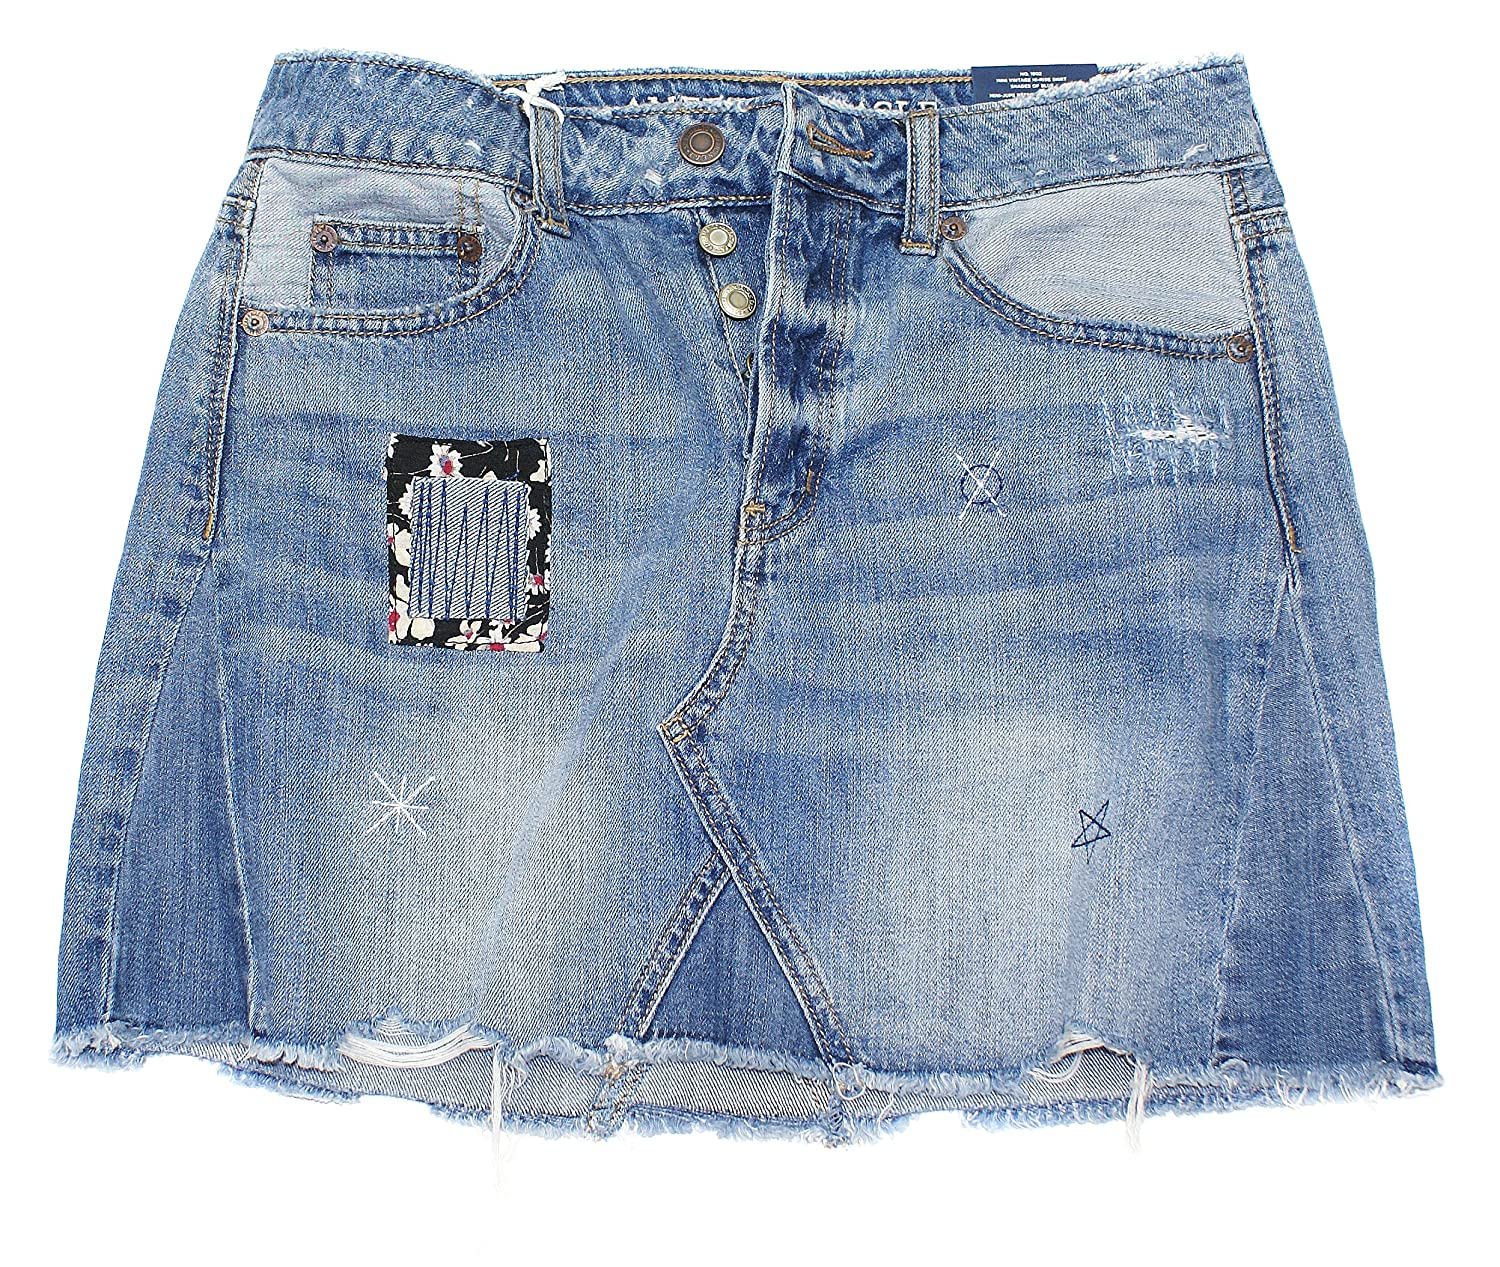 b6488aef American Eagle Outfitters Ripped Jeans for Women - eBay